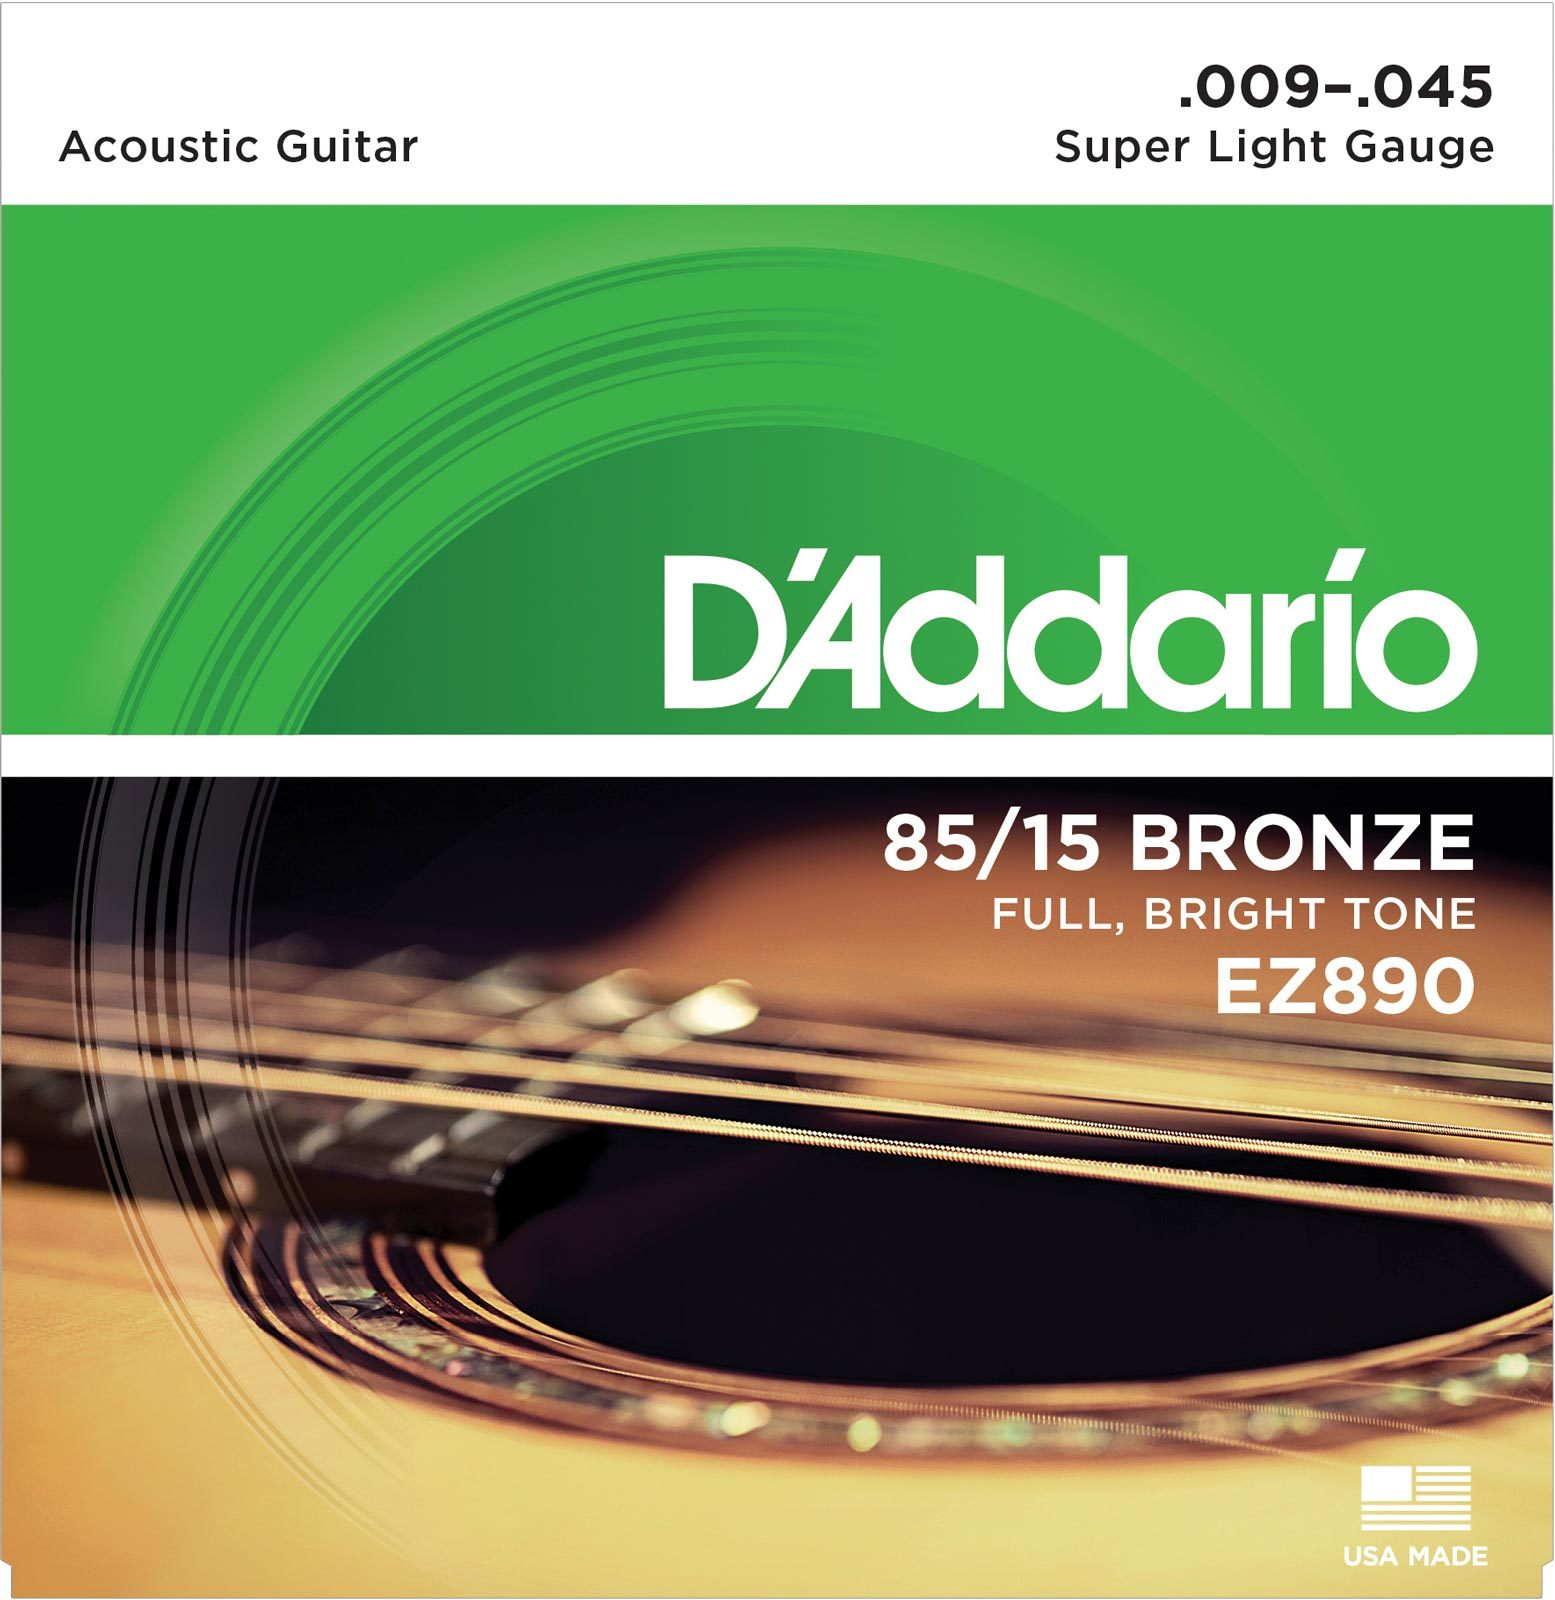 daddario-ez890-american-bronze-8515-super-light-9-45.jpg